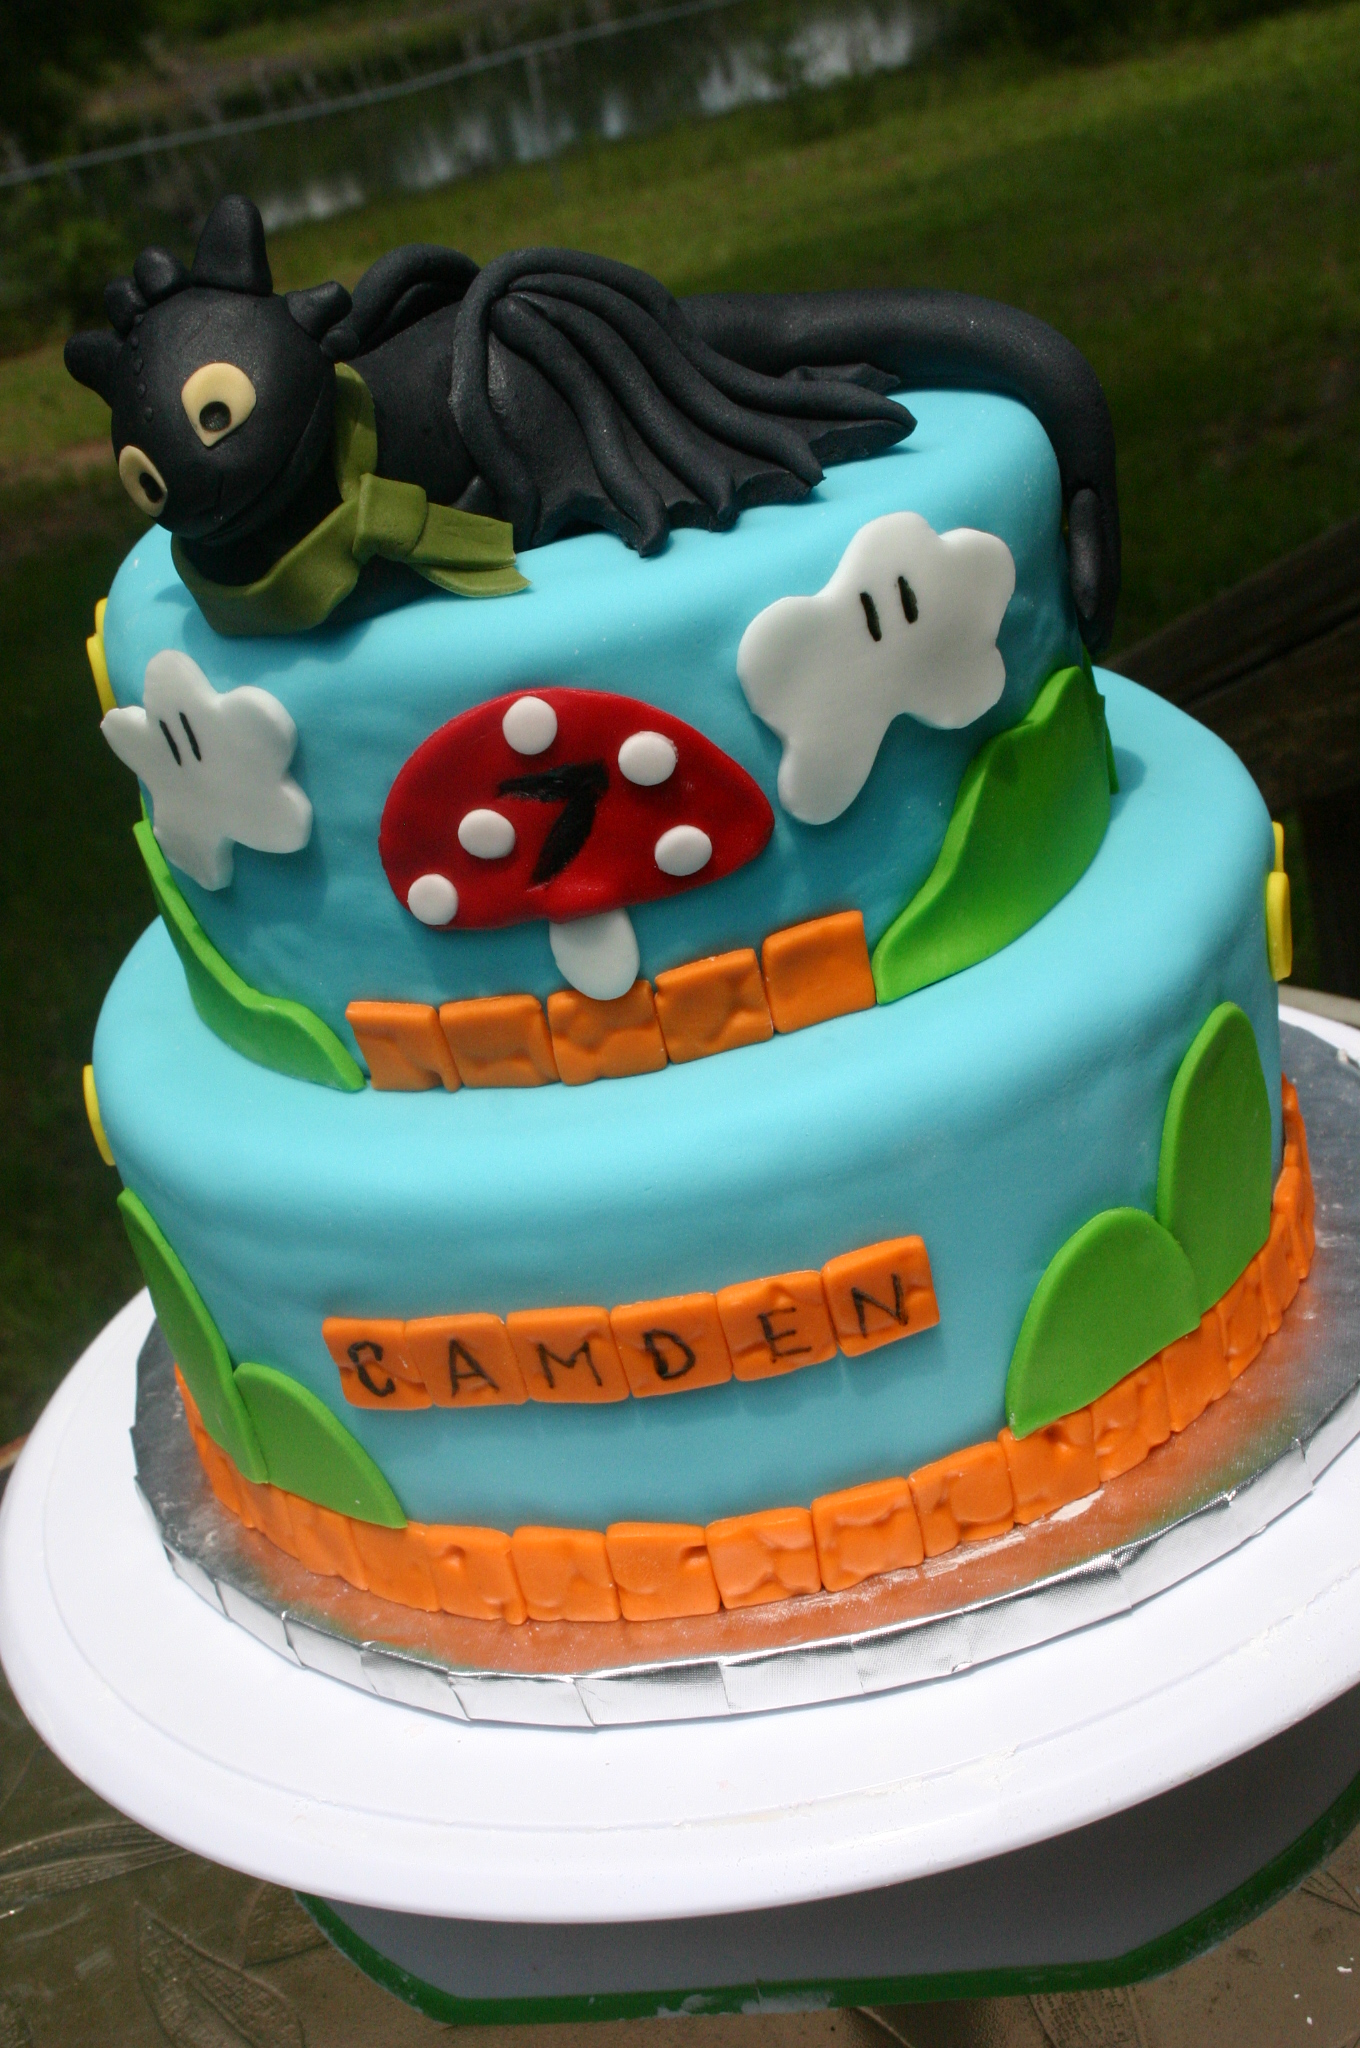 Toothless In Mario Land Birthday Cake Lolos Cakes Sweets